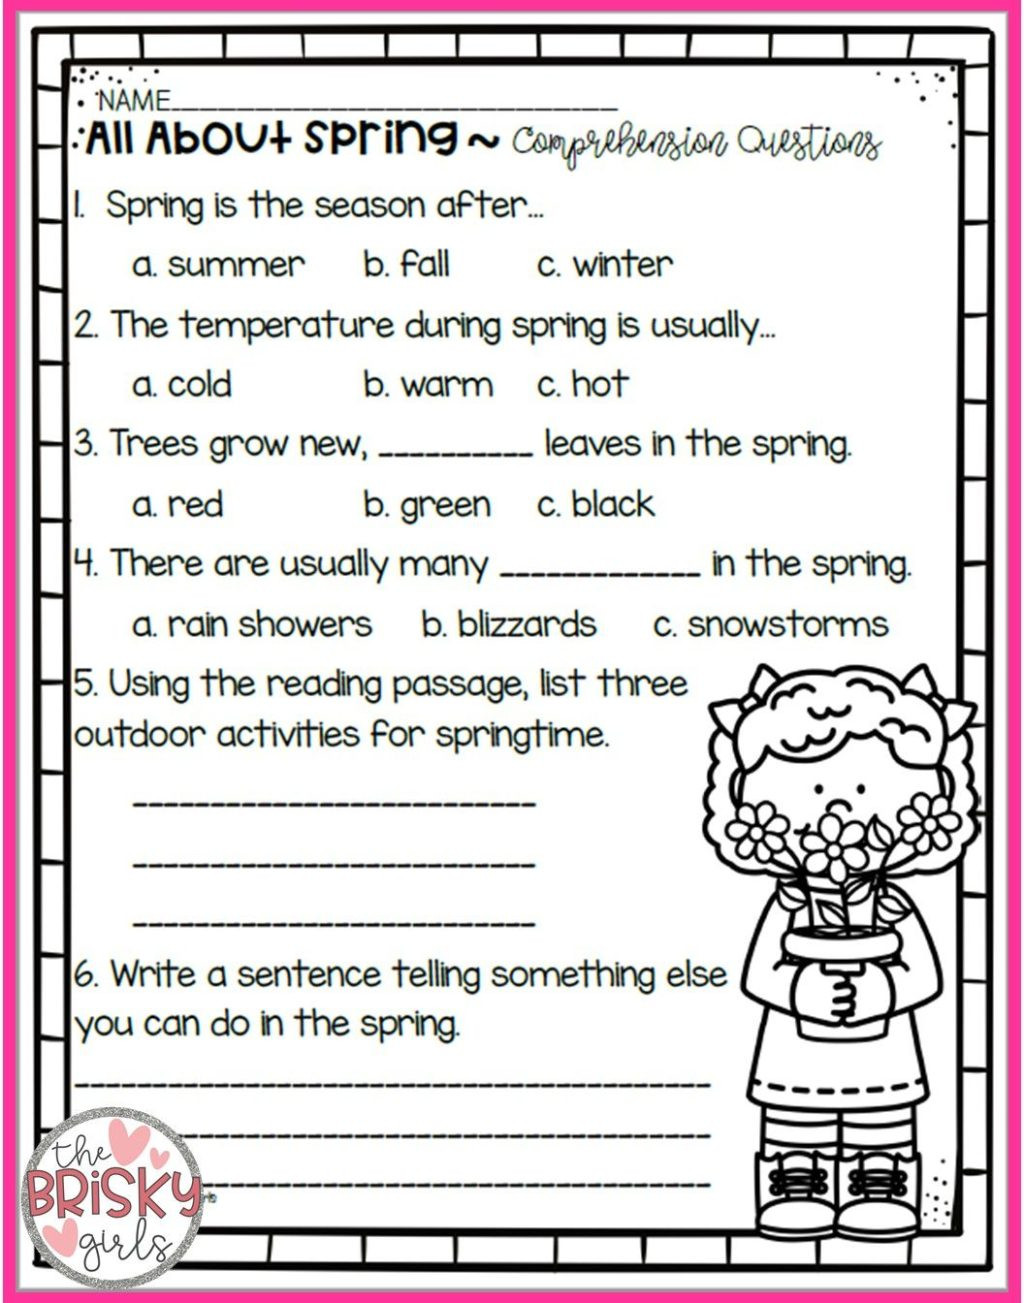 Safety Worksheets Printable Worksheet Free Printable Worksheets foridsindergarten